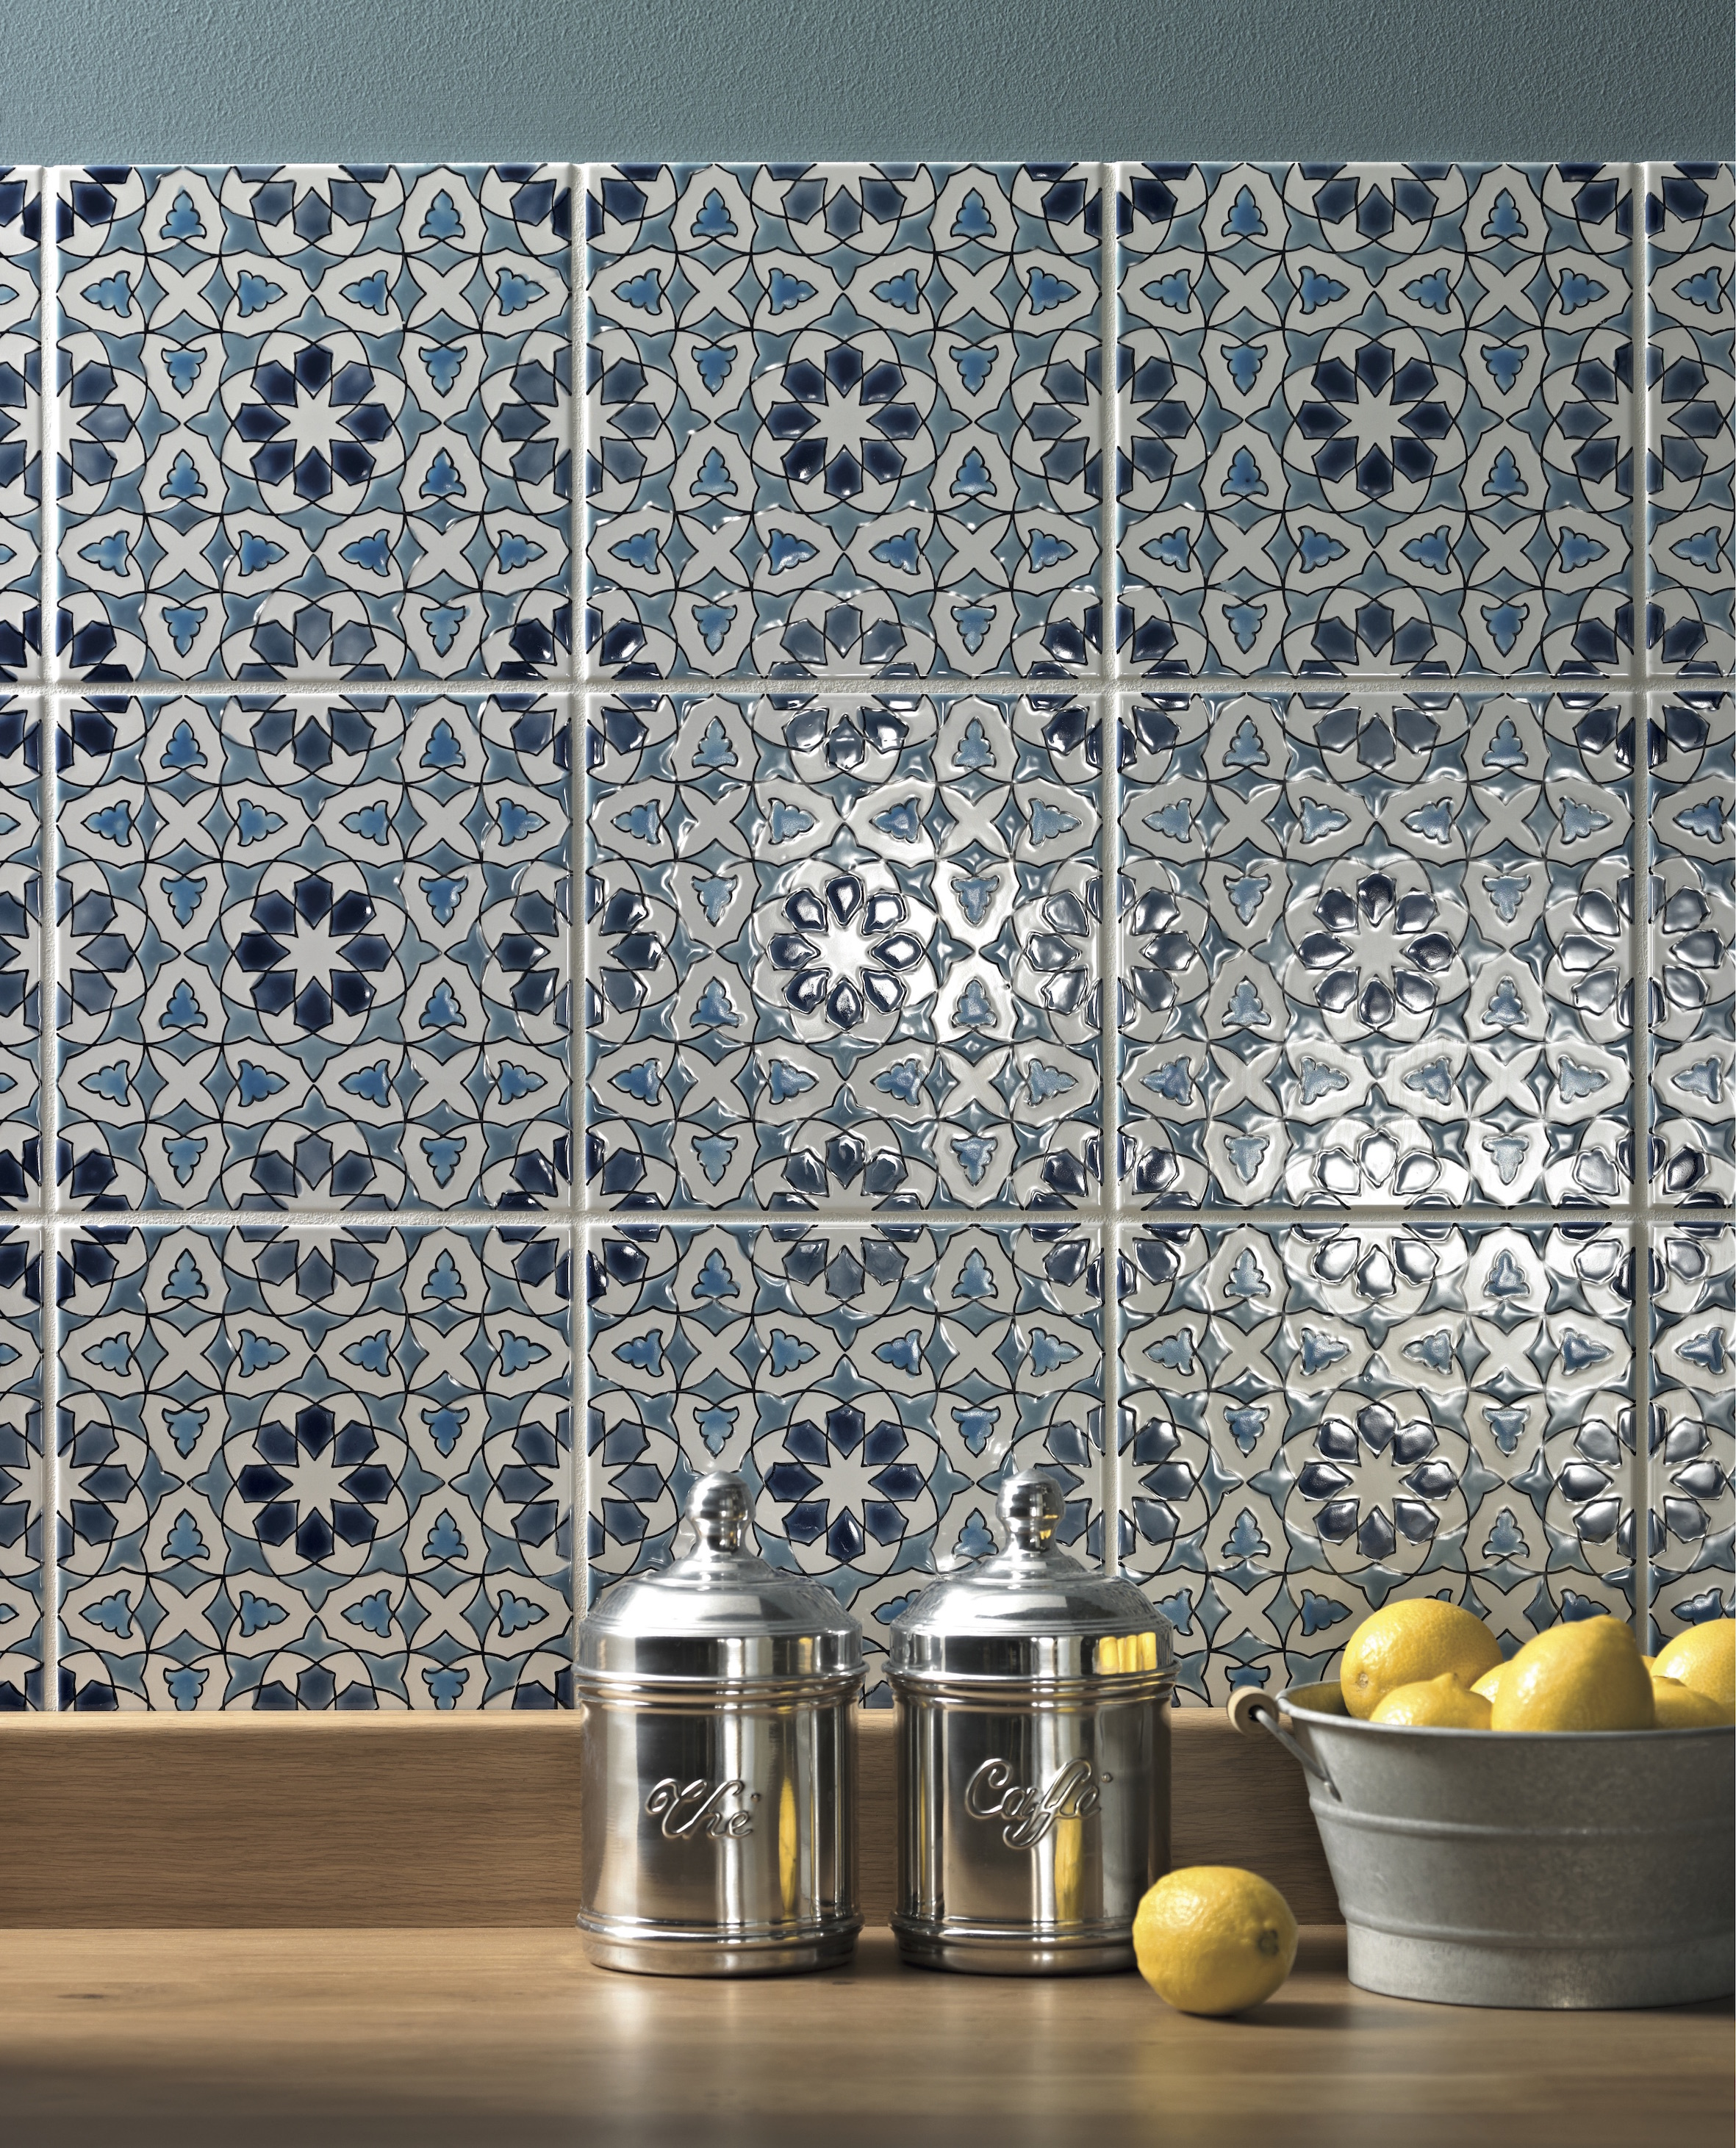 6 Top Tips For Choosing The Perfect Kitchen Tiles